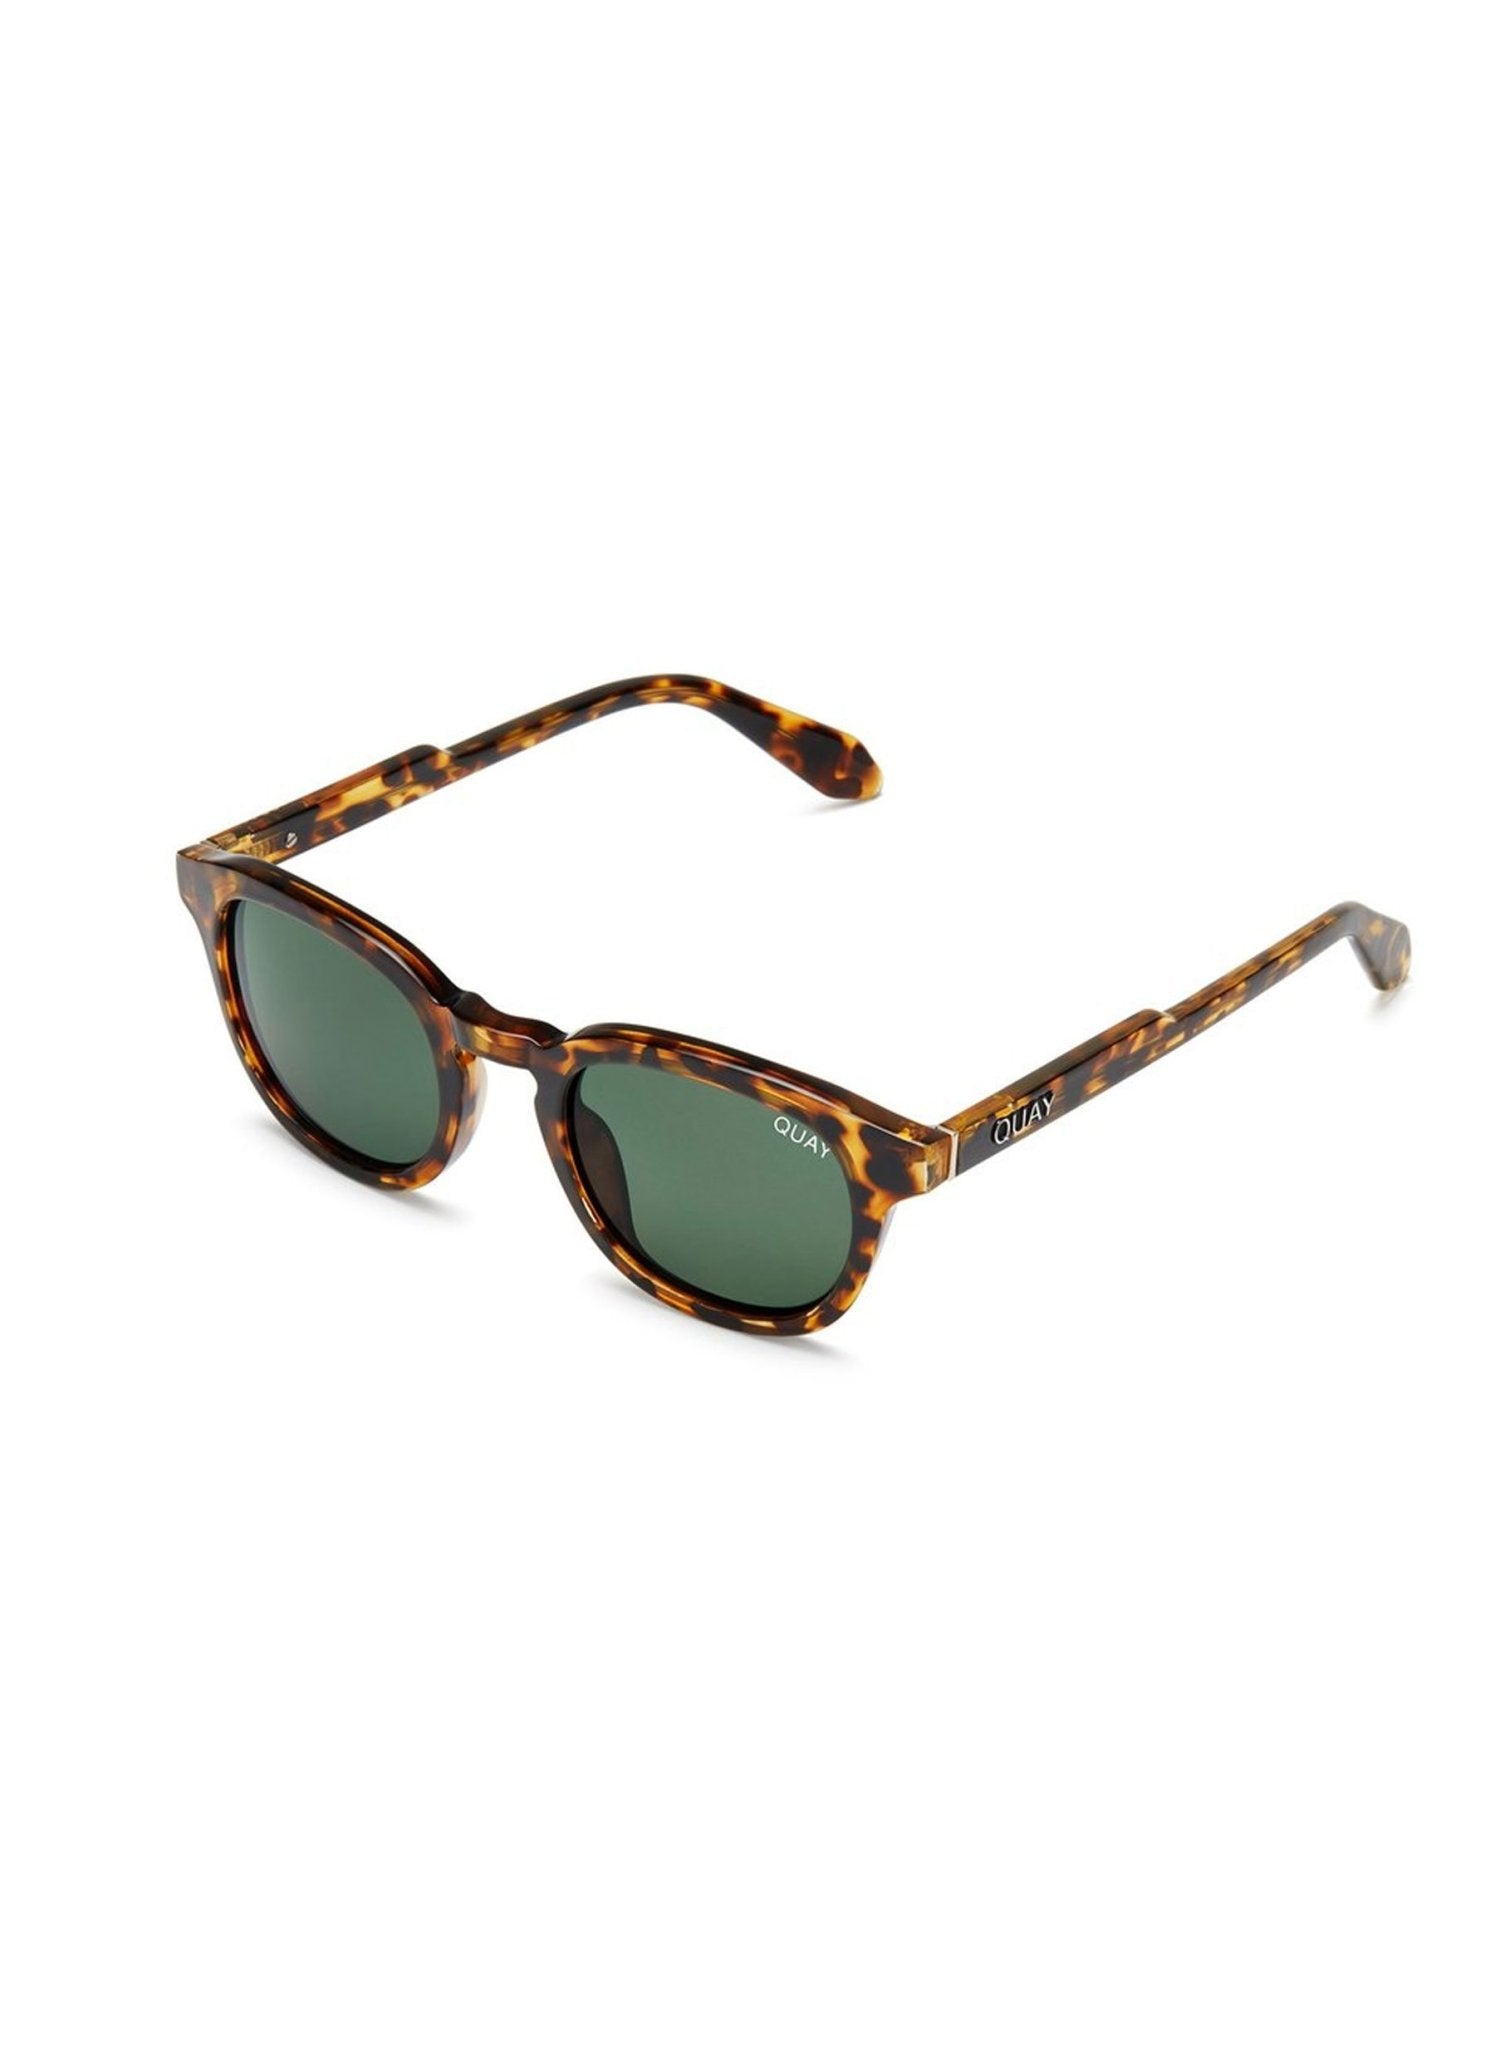 Quay Walk On Sunglasses - Salty Mermaid Swim